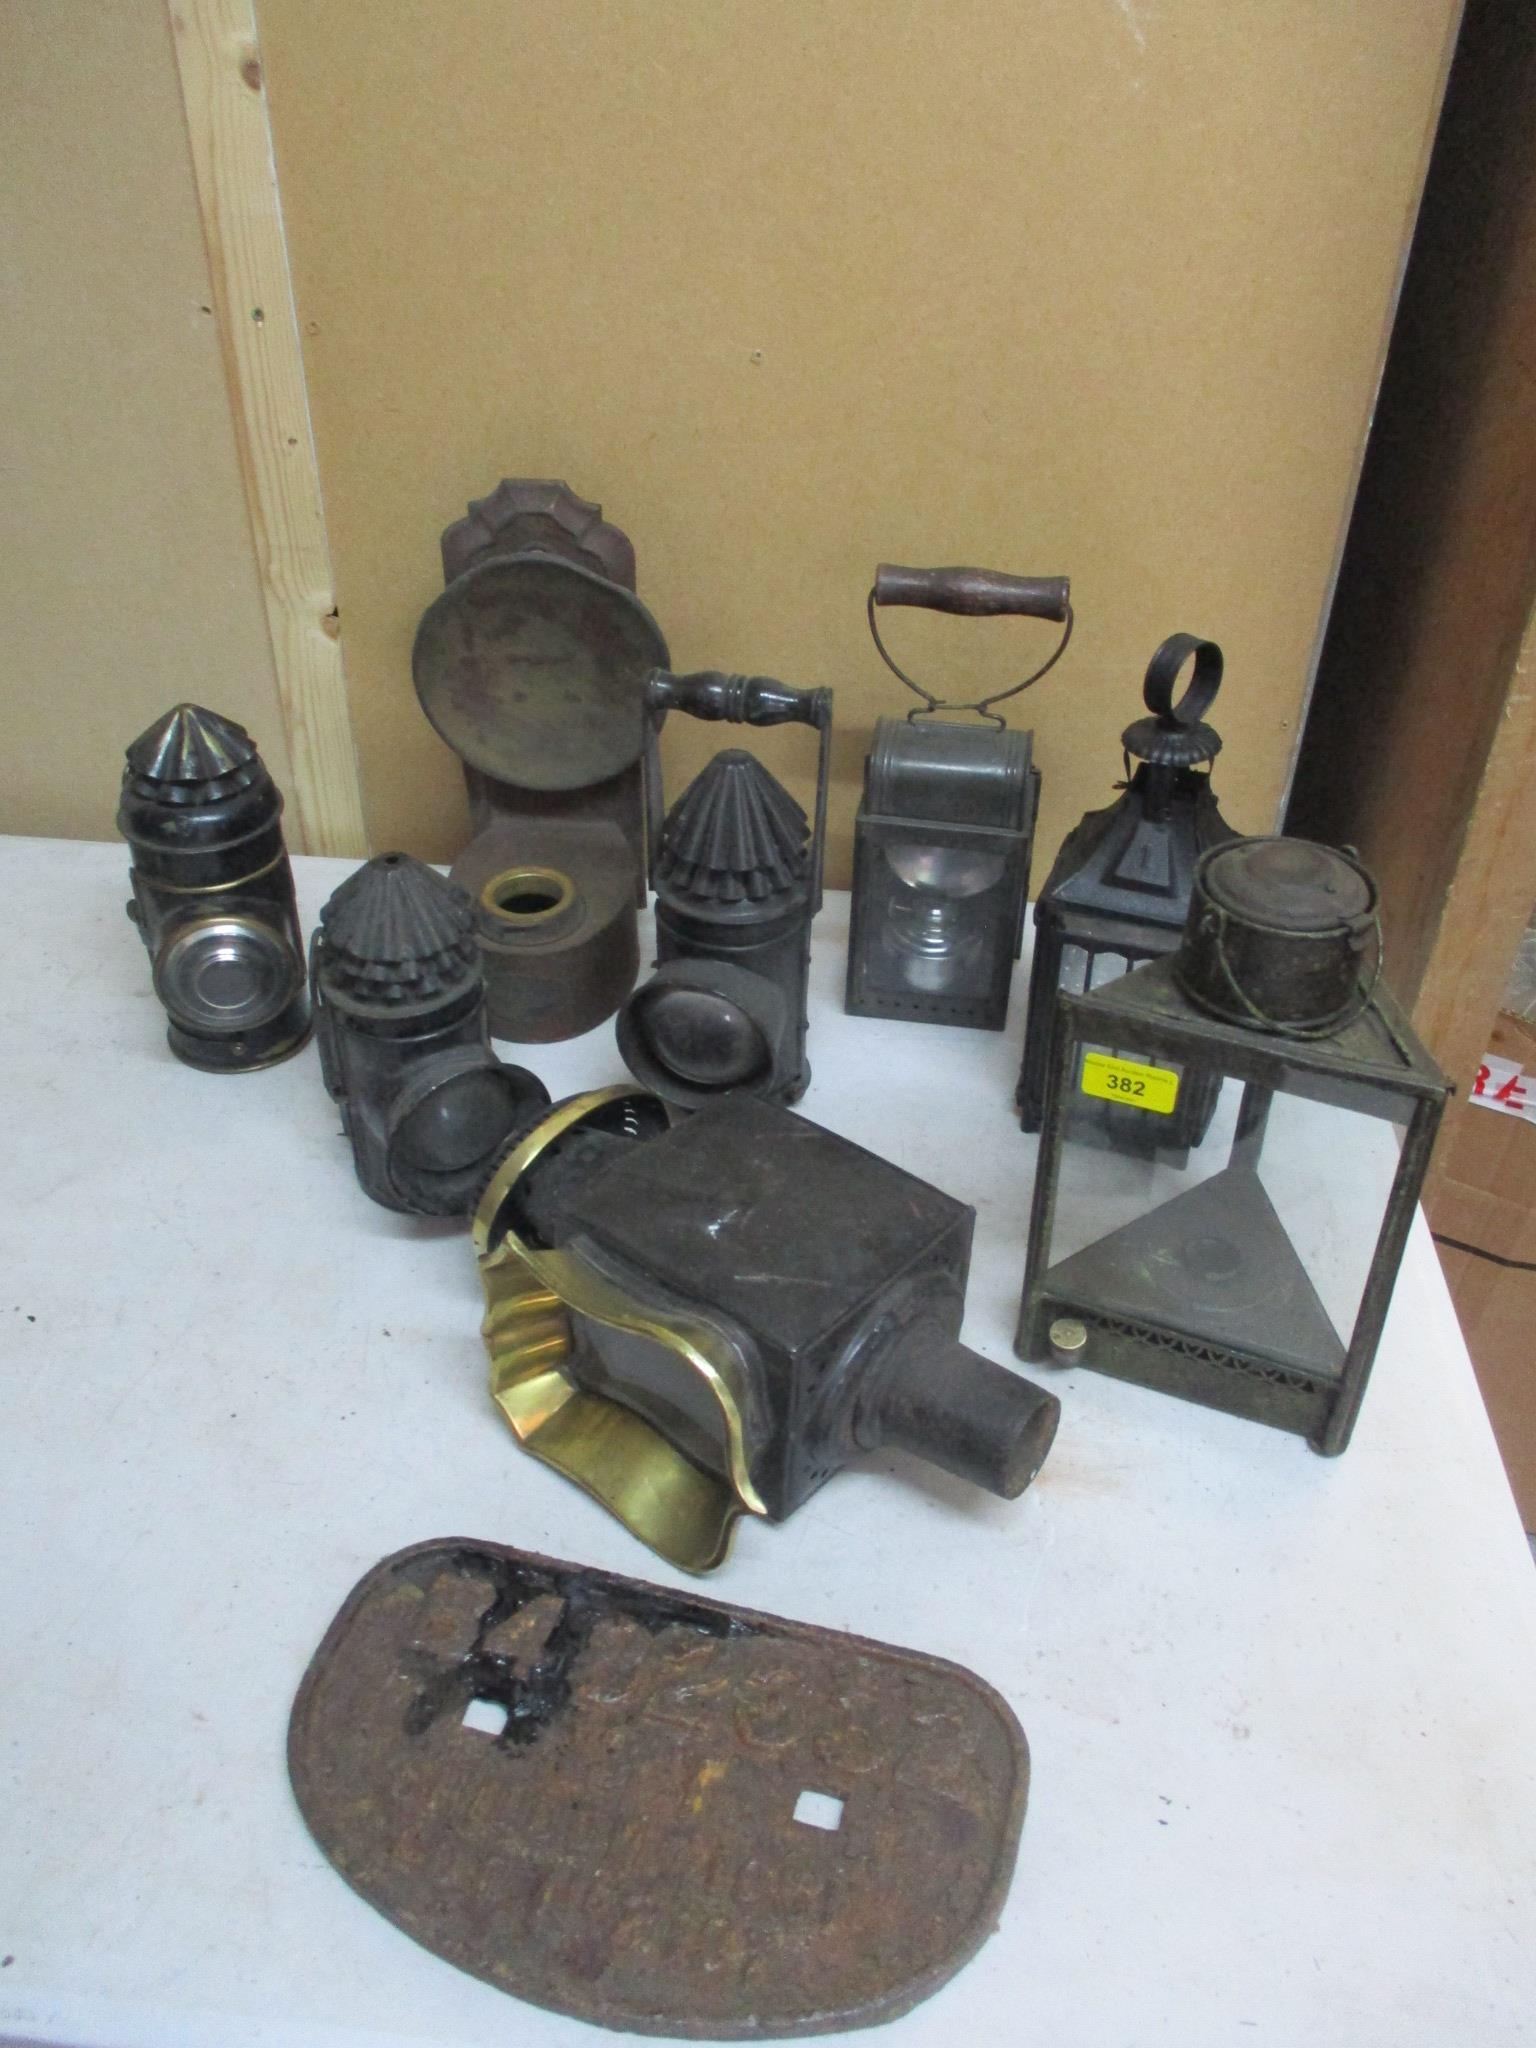 A group of 19th century and later lamps to include a Perko boat signal lamp by the Perkins Marine